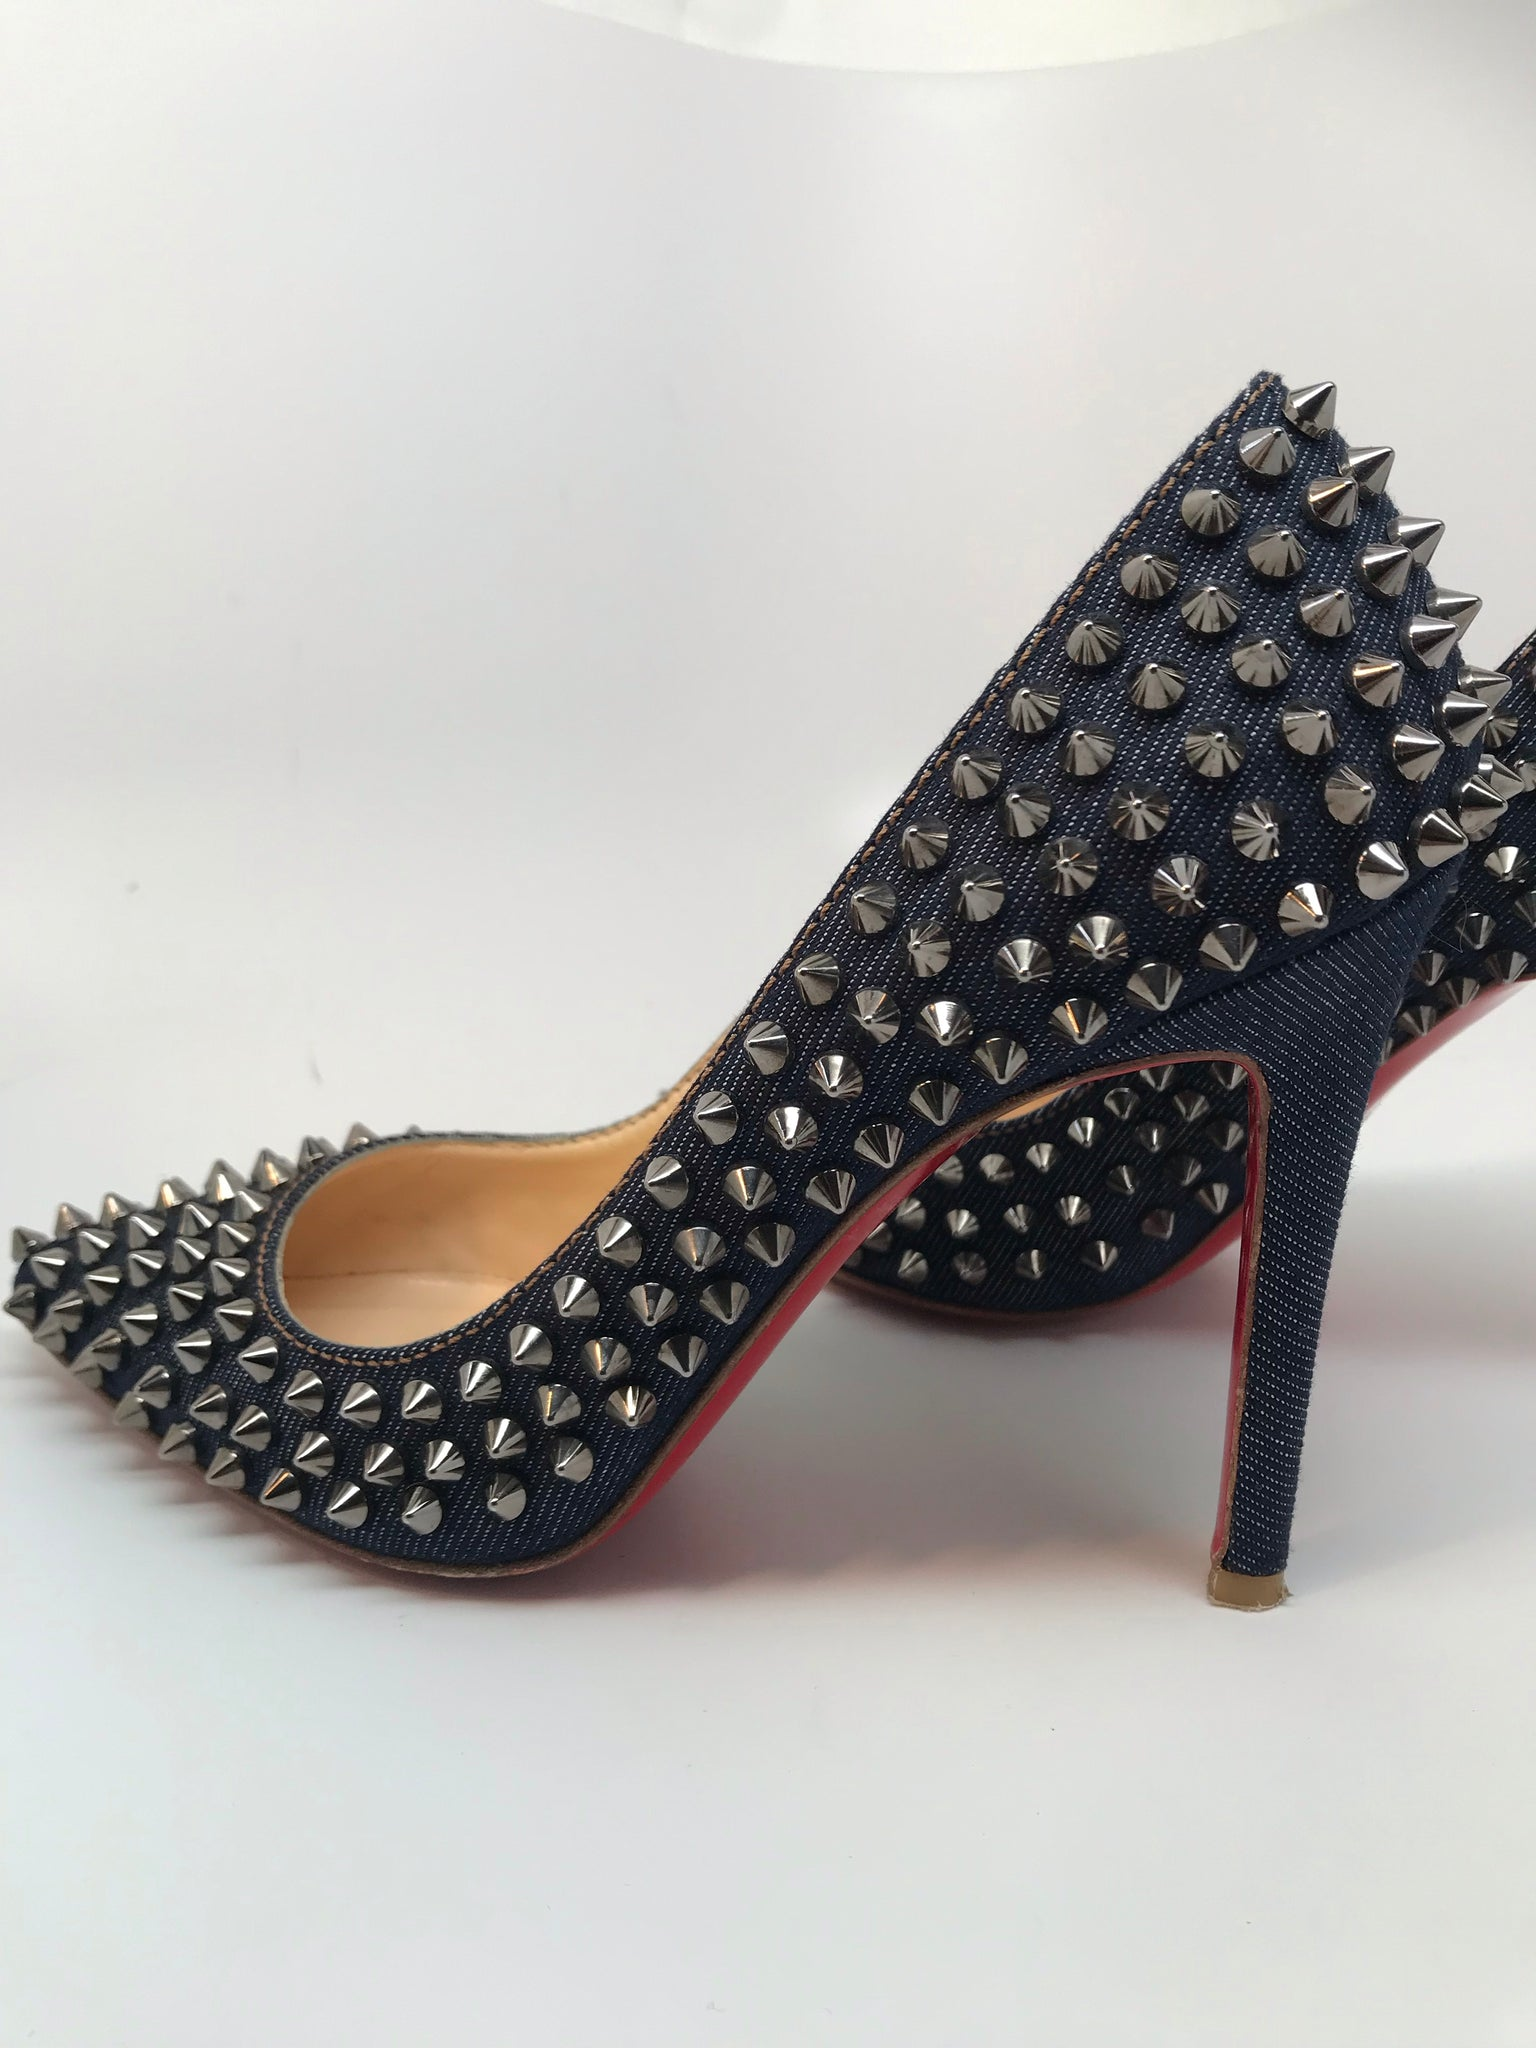 CHRISTIAN LOUBOUTIN PIGALLE 100 STUDDED DENIM PUMPS - SIZE 36.5